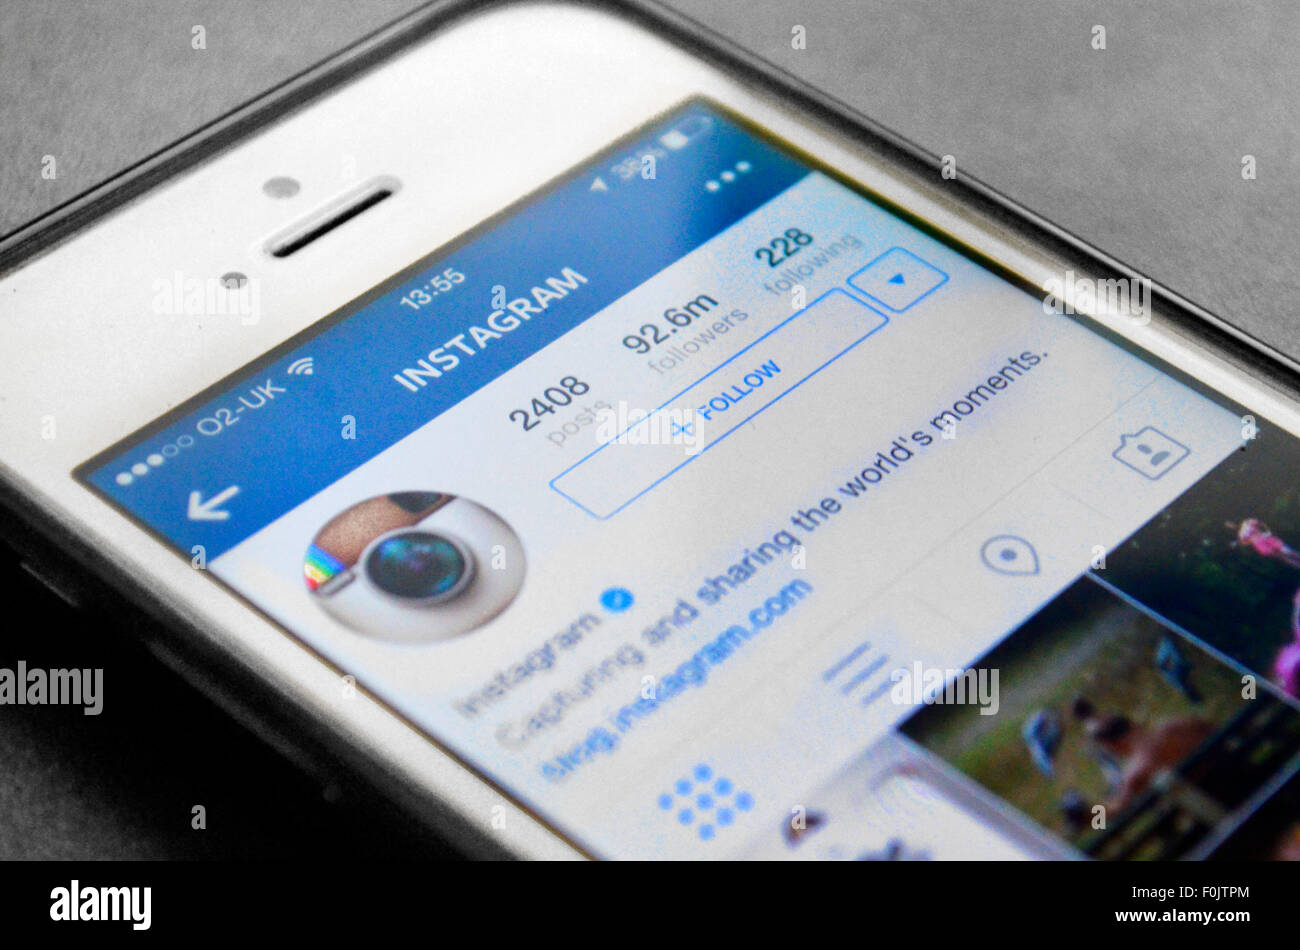 Instagram app on iphone follow - Stock Image